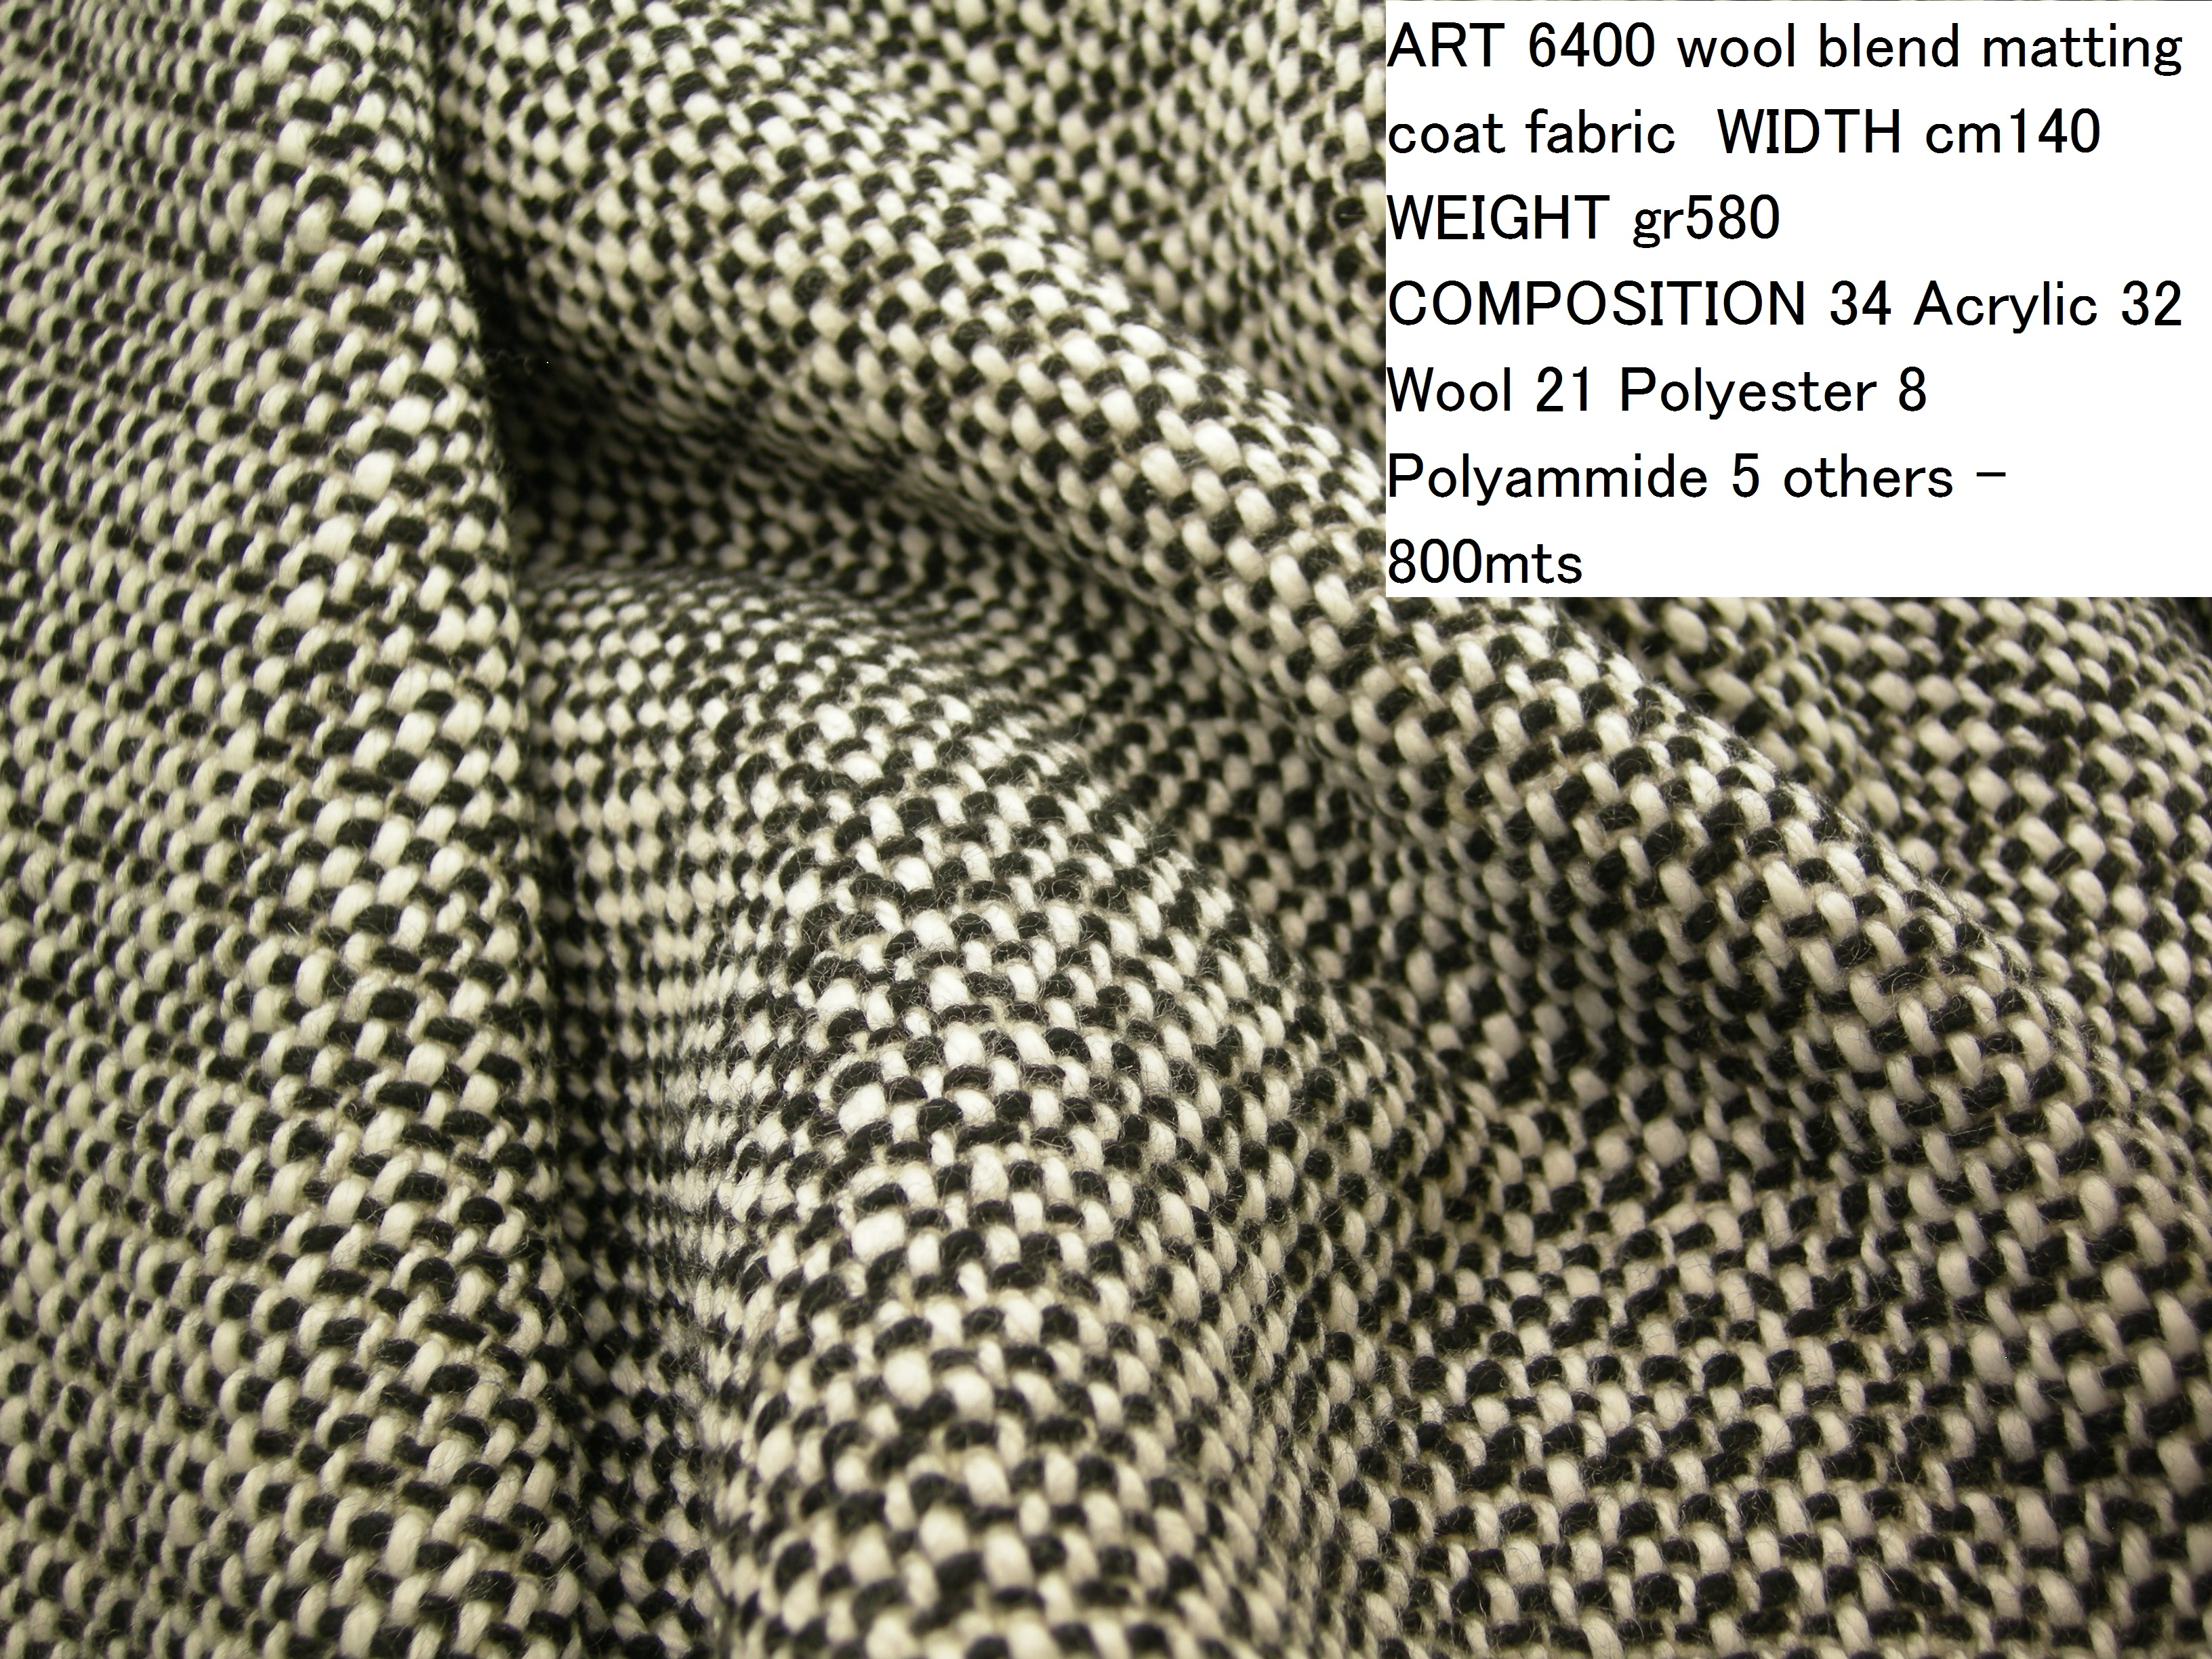 ART 6400 wool blend matting coat fabric WIDTH cm140 WEIGHT gr580 COMPOSITION 34 Acrylic 32 Wool 21 Polyester 8 Polyammide 5 others - 800mts